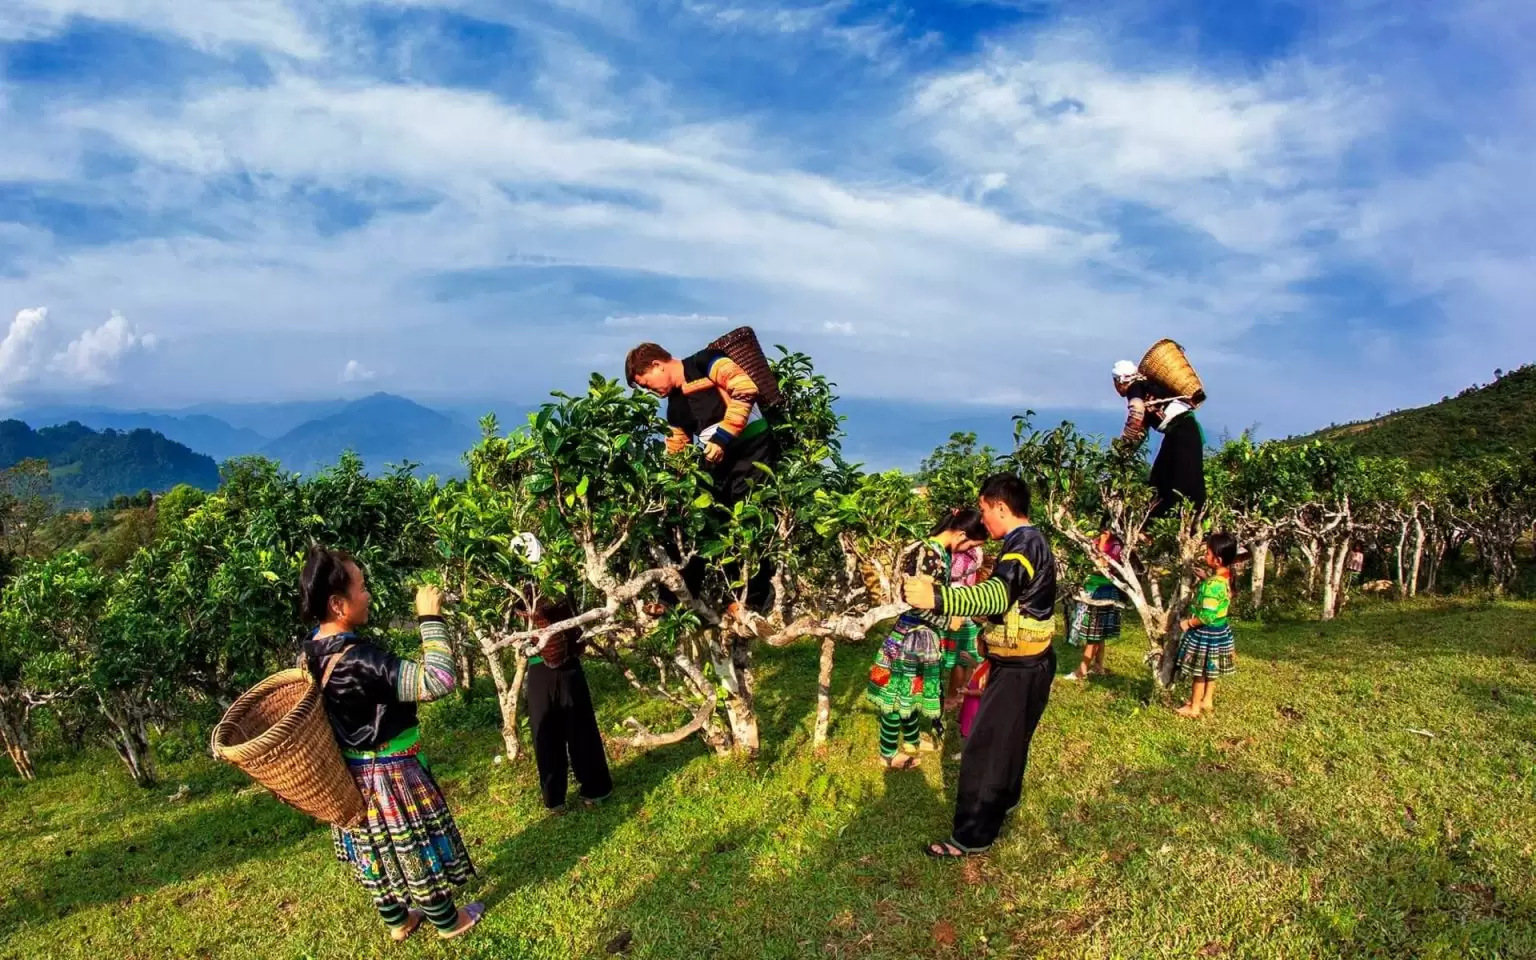 Suoi Giang gets its fame for growing over hundred years old tea trees, which provide the famous Shan Tuyet tea. (Photo: Vietnamtravel)